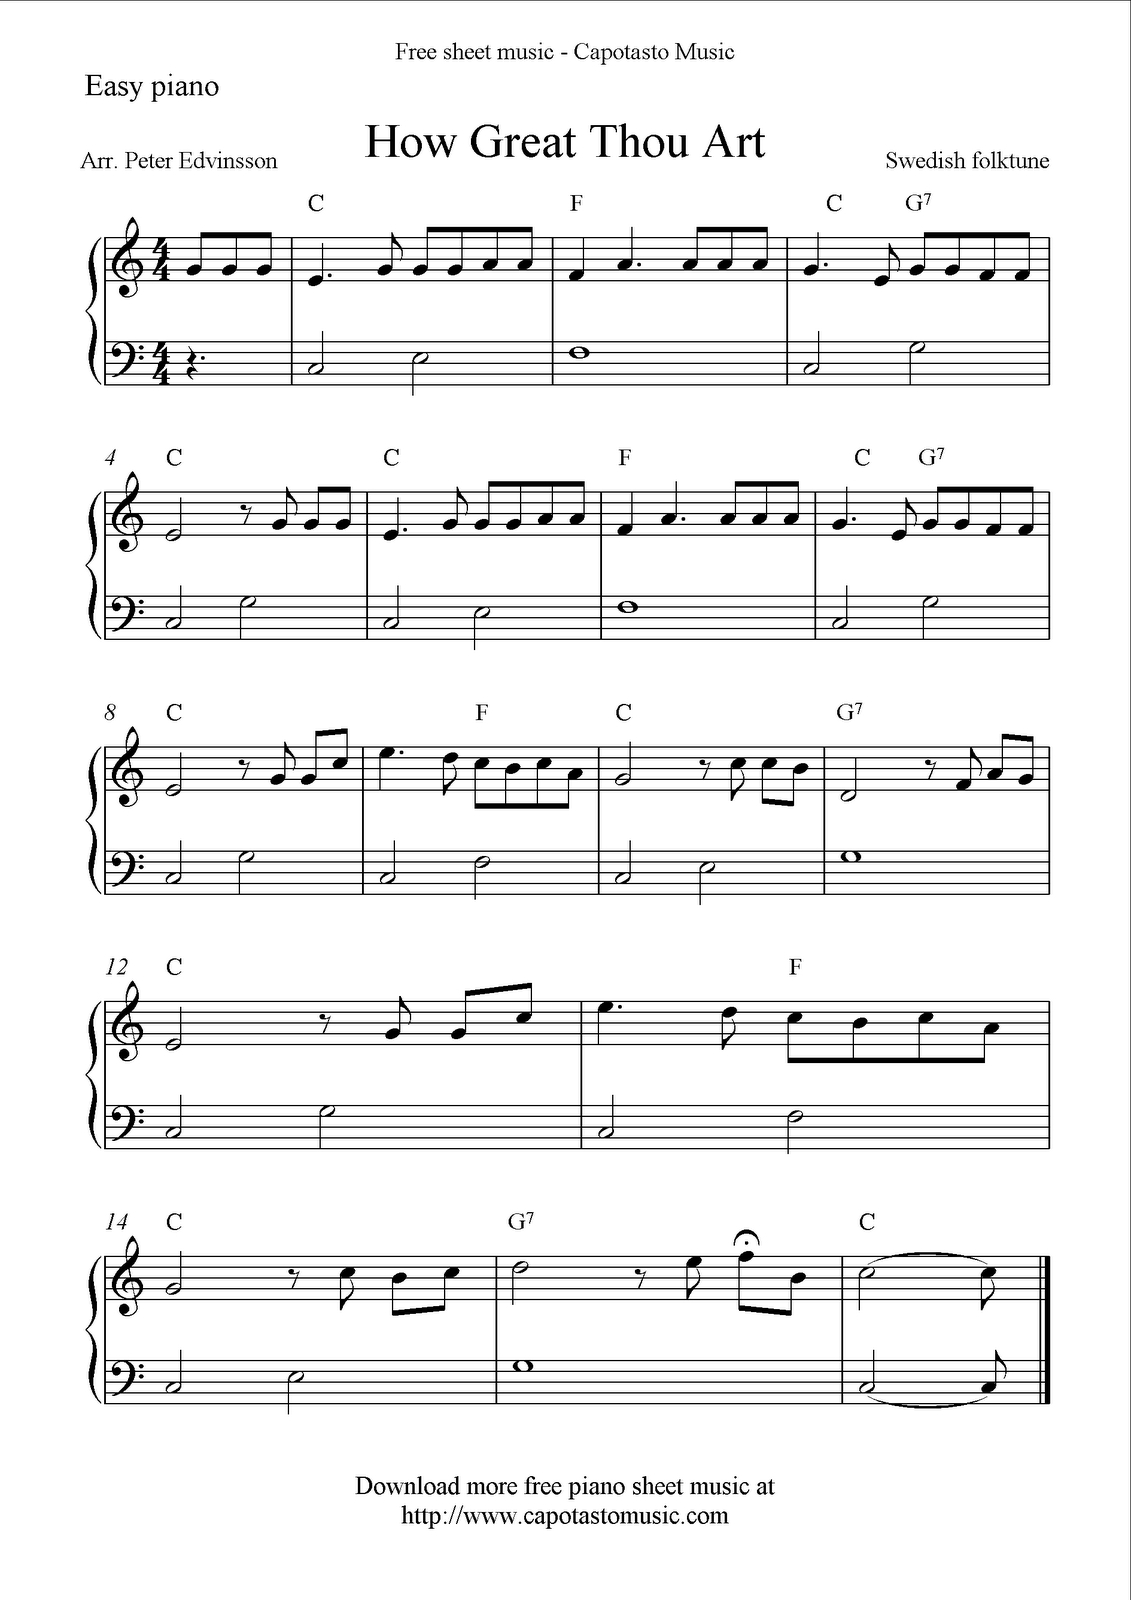 Free Sheet Music Pages & Guitar Lessons | Orchestra | Pinterest - Piano Sheet Music For Beginners Popular Songs Free Printable